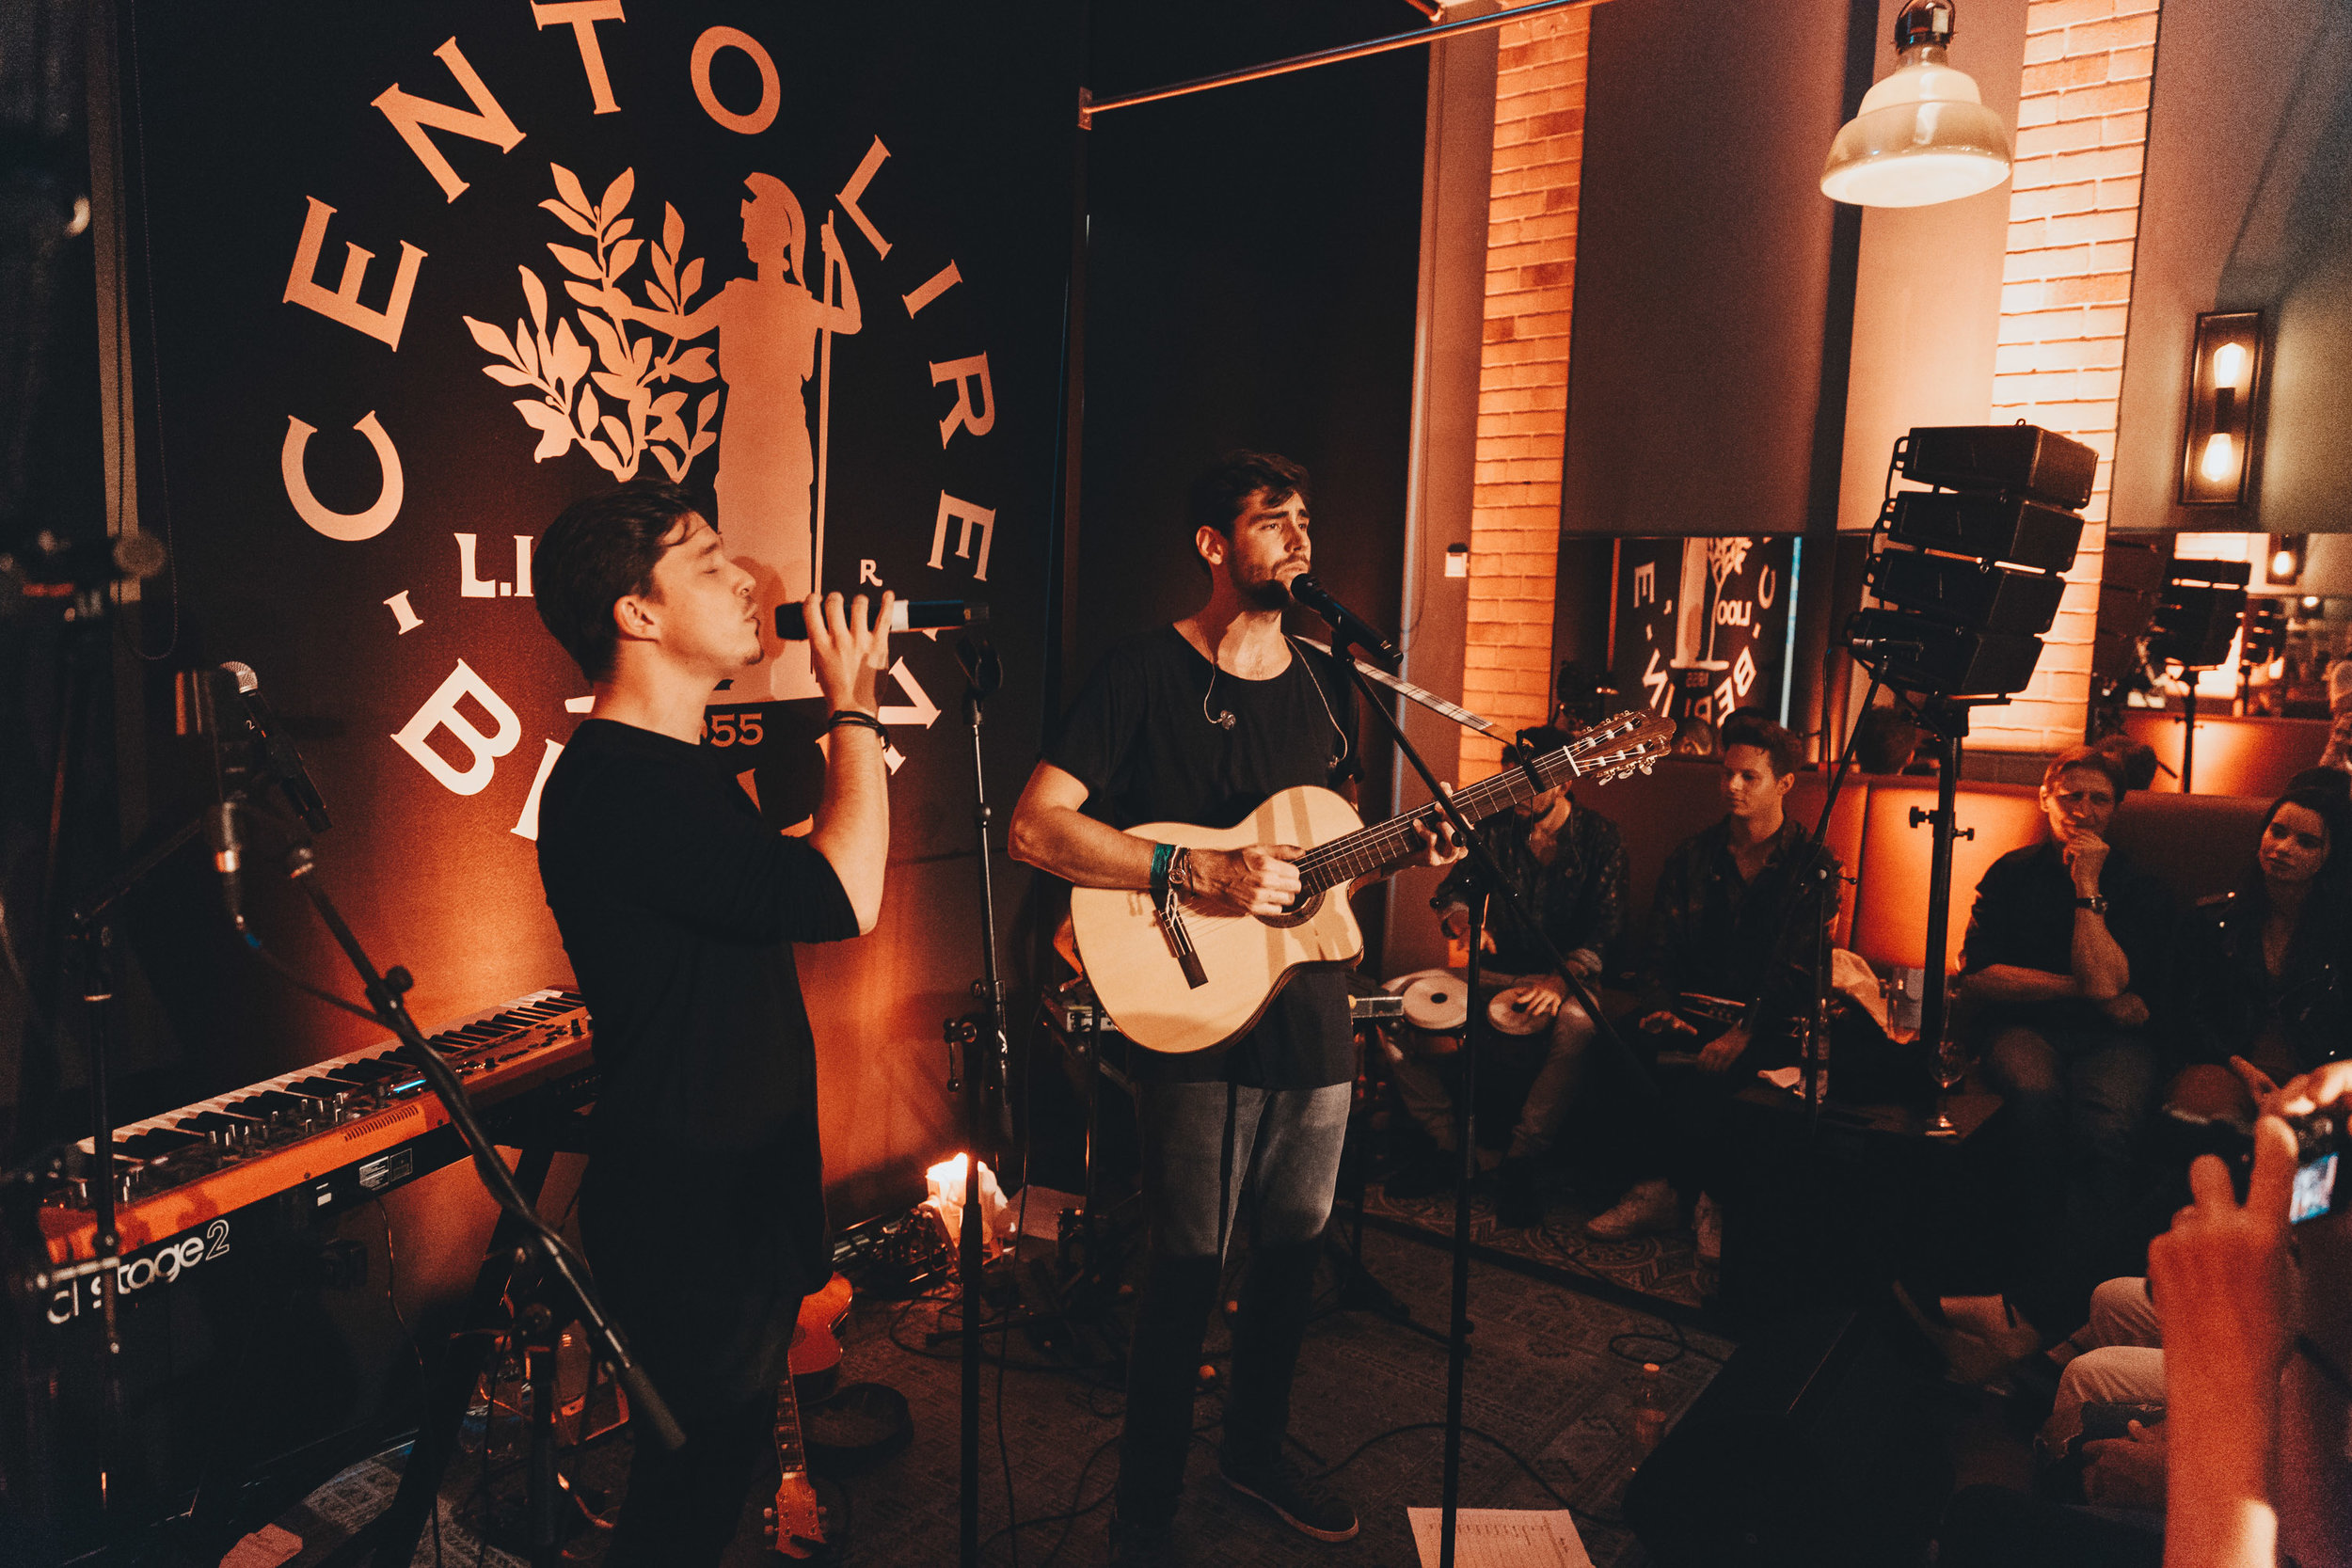 20170702-THINKOOTB-PRIVATE-SOUL-FOOD-CONCERT-OFFENBLENDE-JN-130.jpg